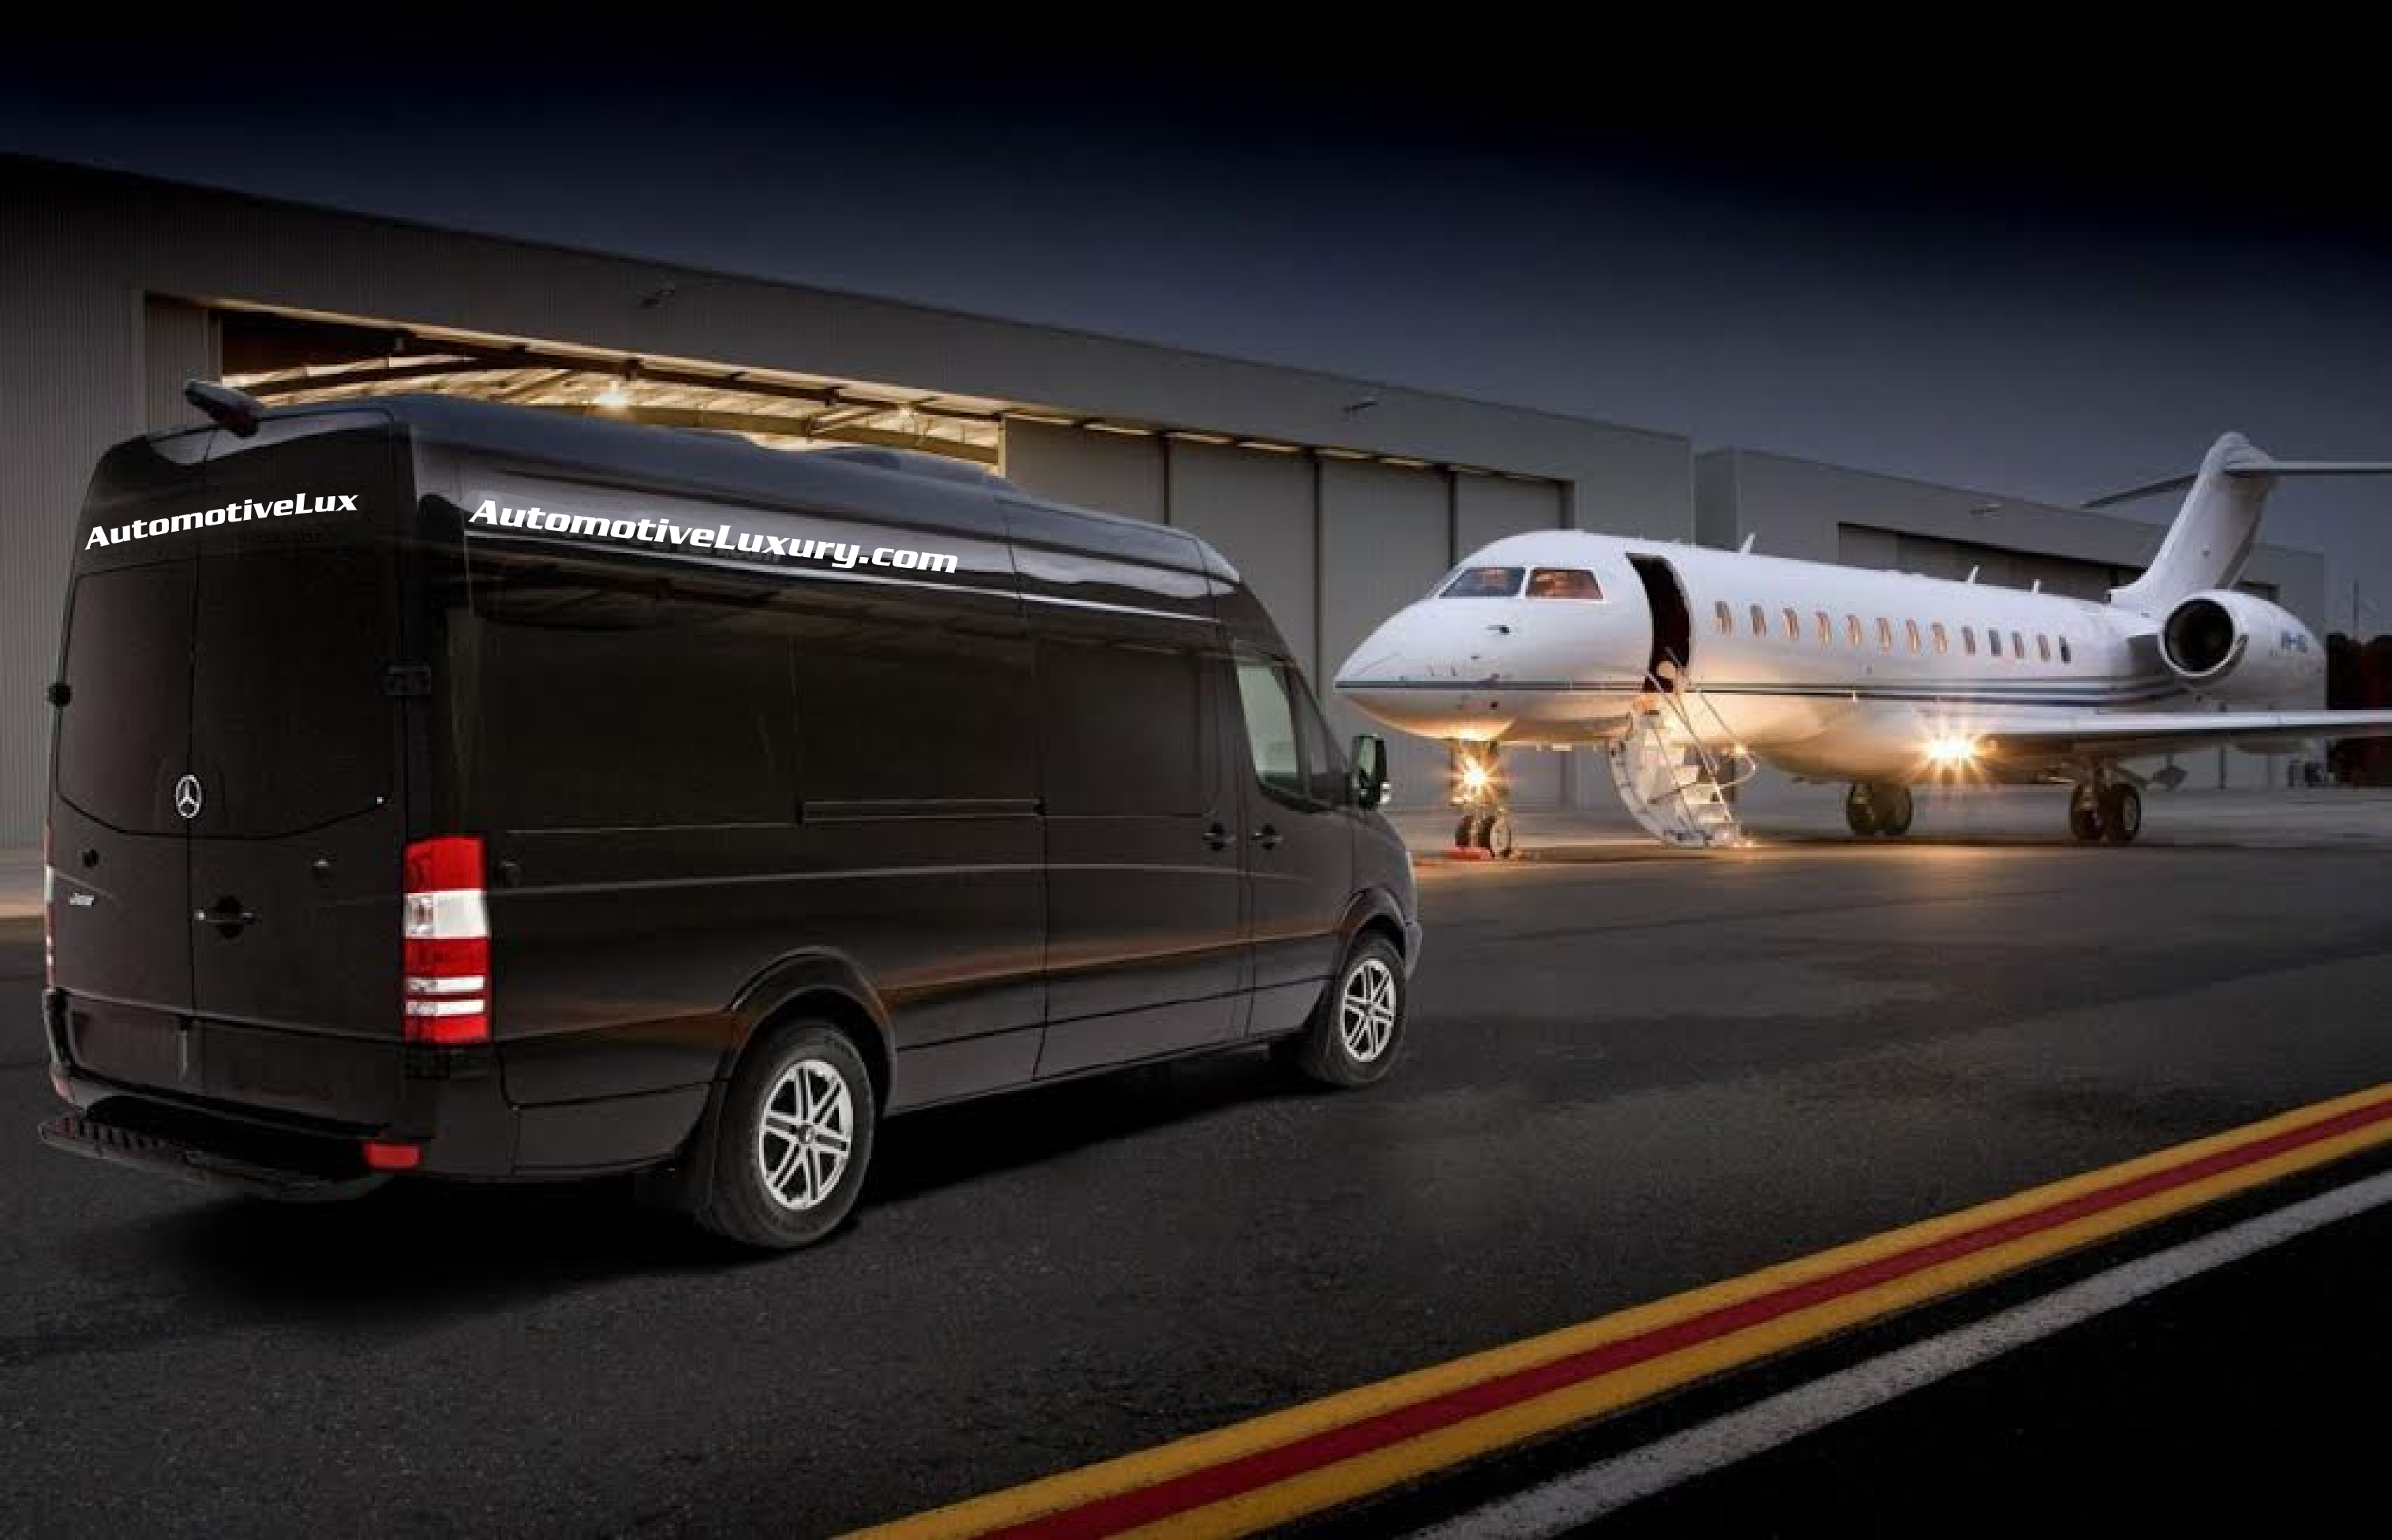 Automotive Luxury Limo and Car Service image 14